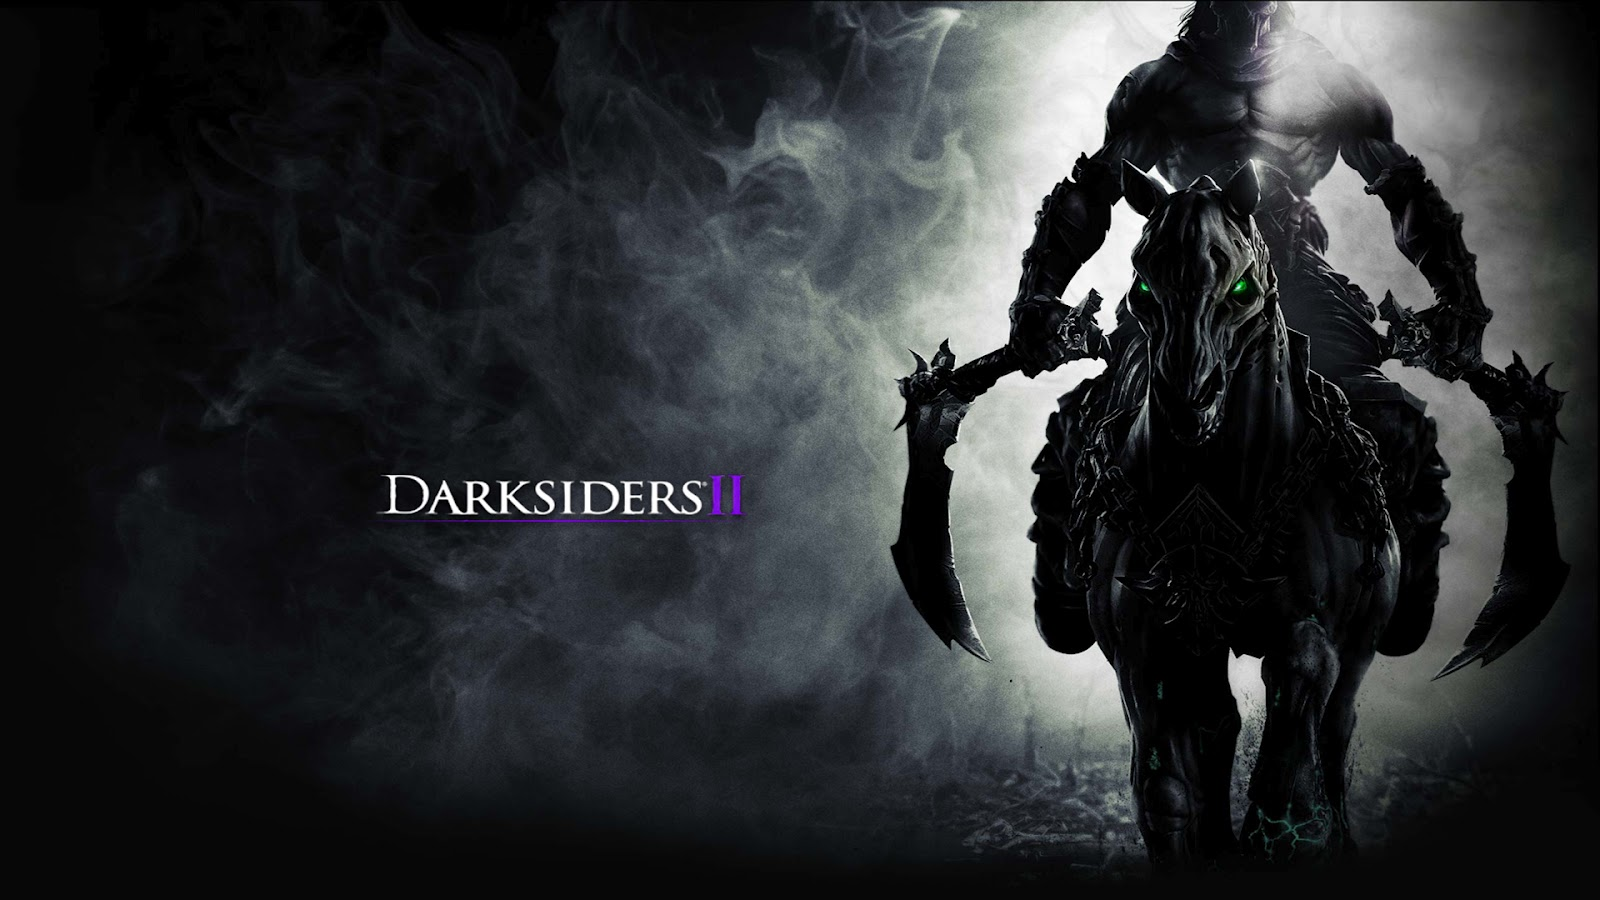 Darksiders 2 Death Rides HD Wallpaper 1080p   HD Dock 1600x900